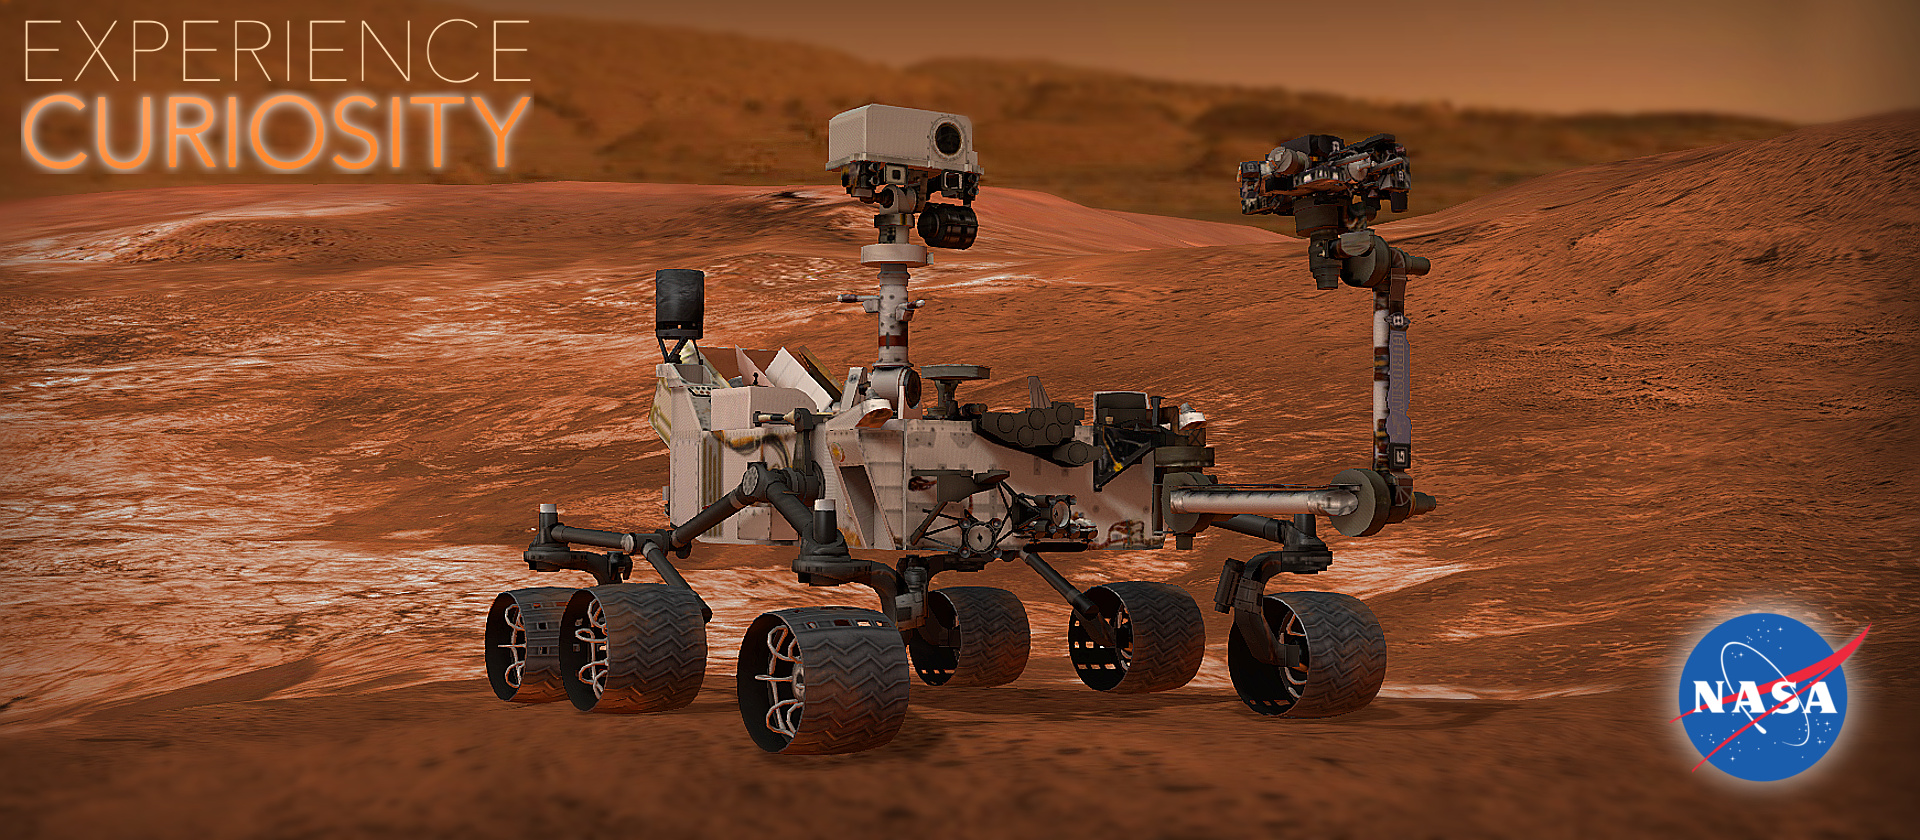 NASA's Experience Curiosity powered by Verge3D